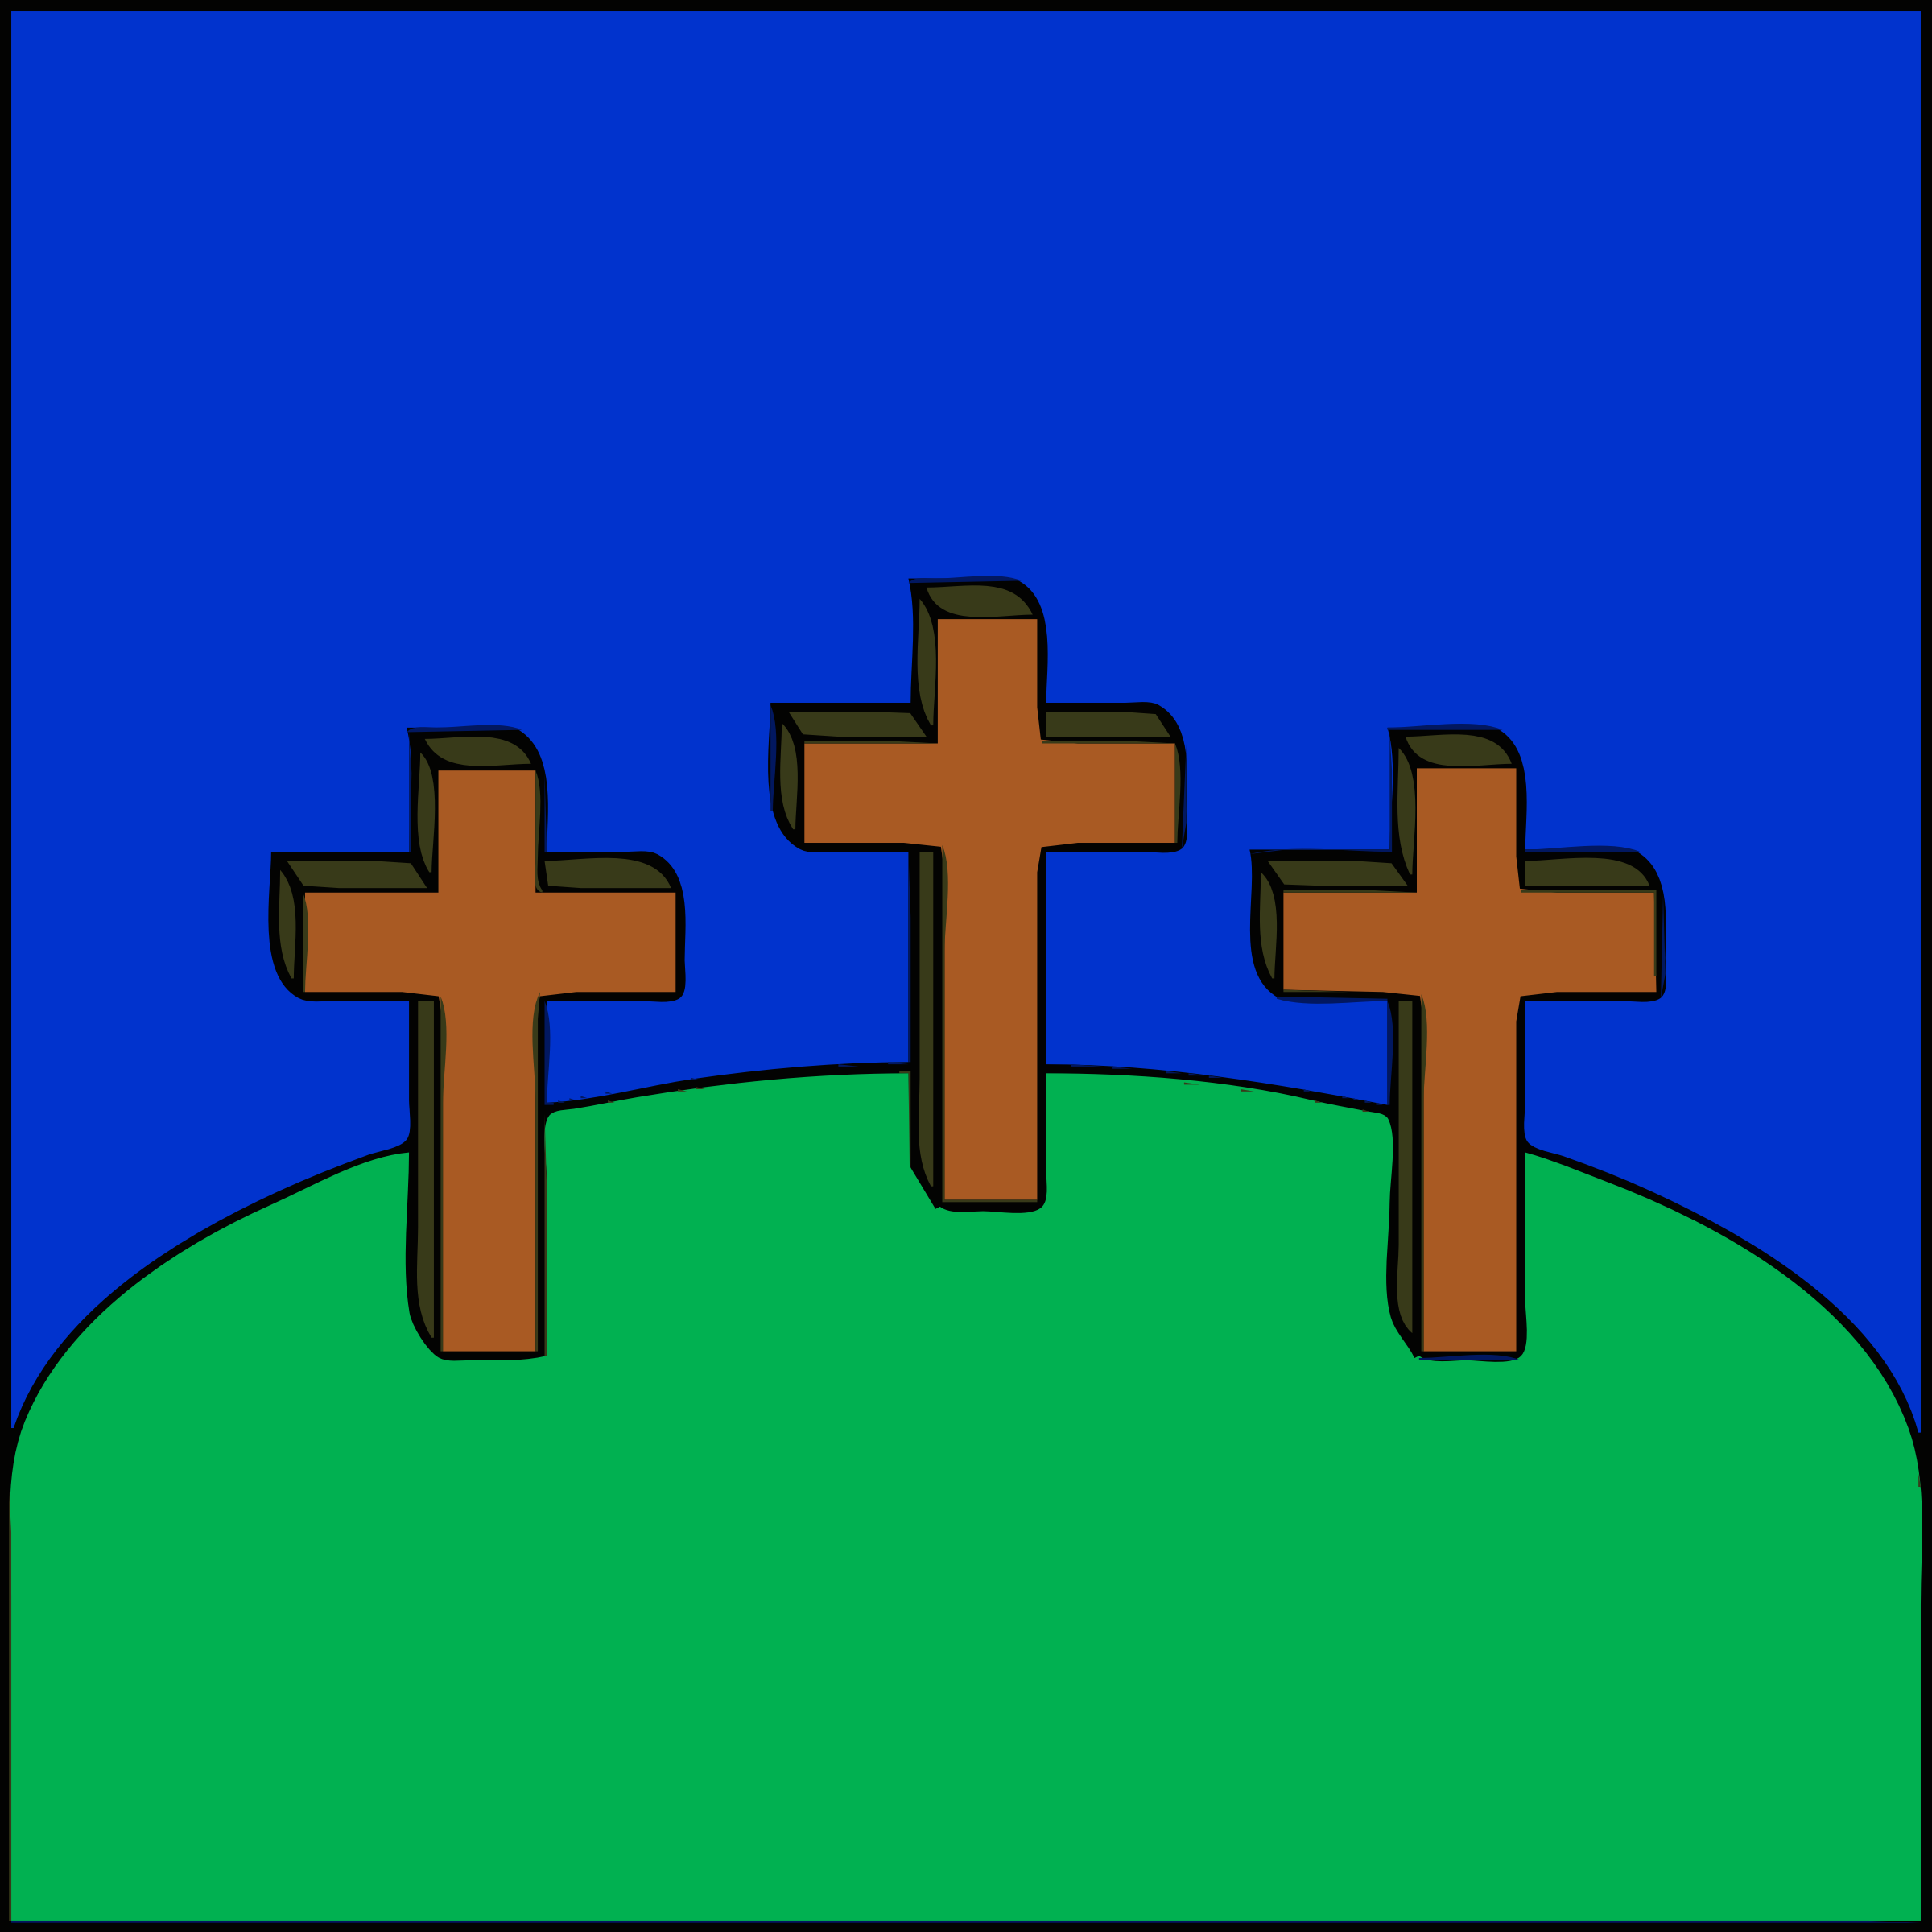 3 Crosses On A Hill - ClipArt Best